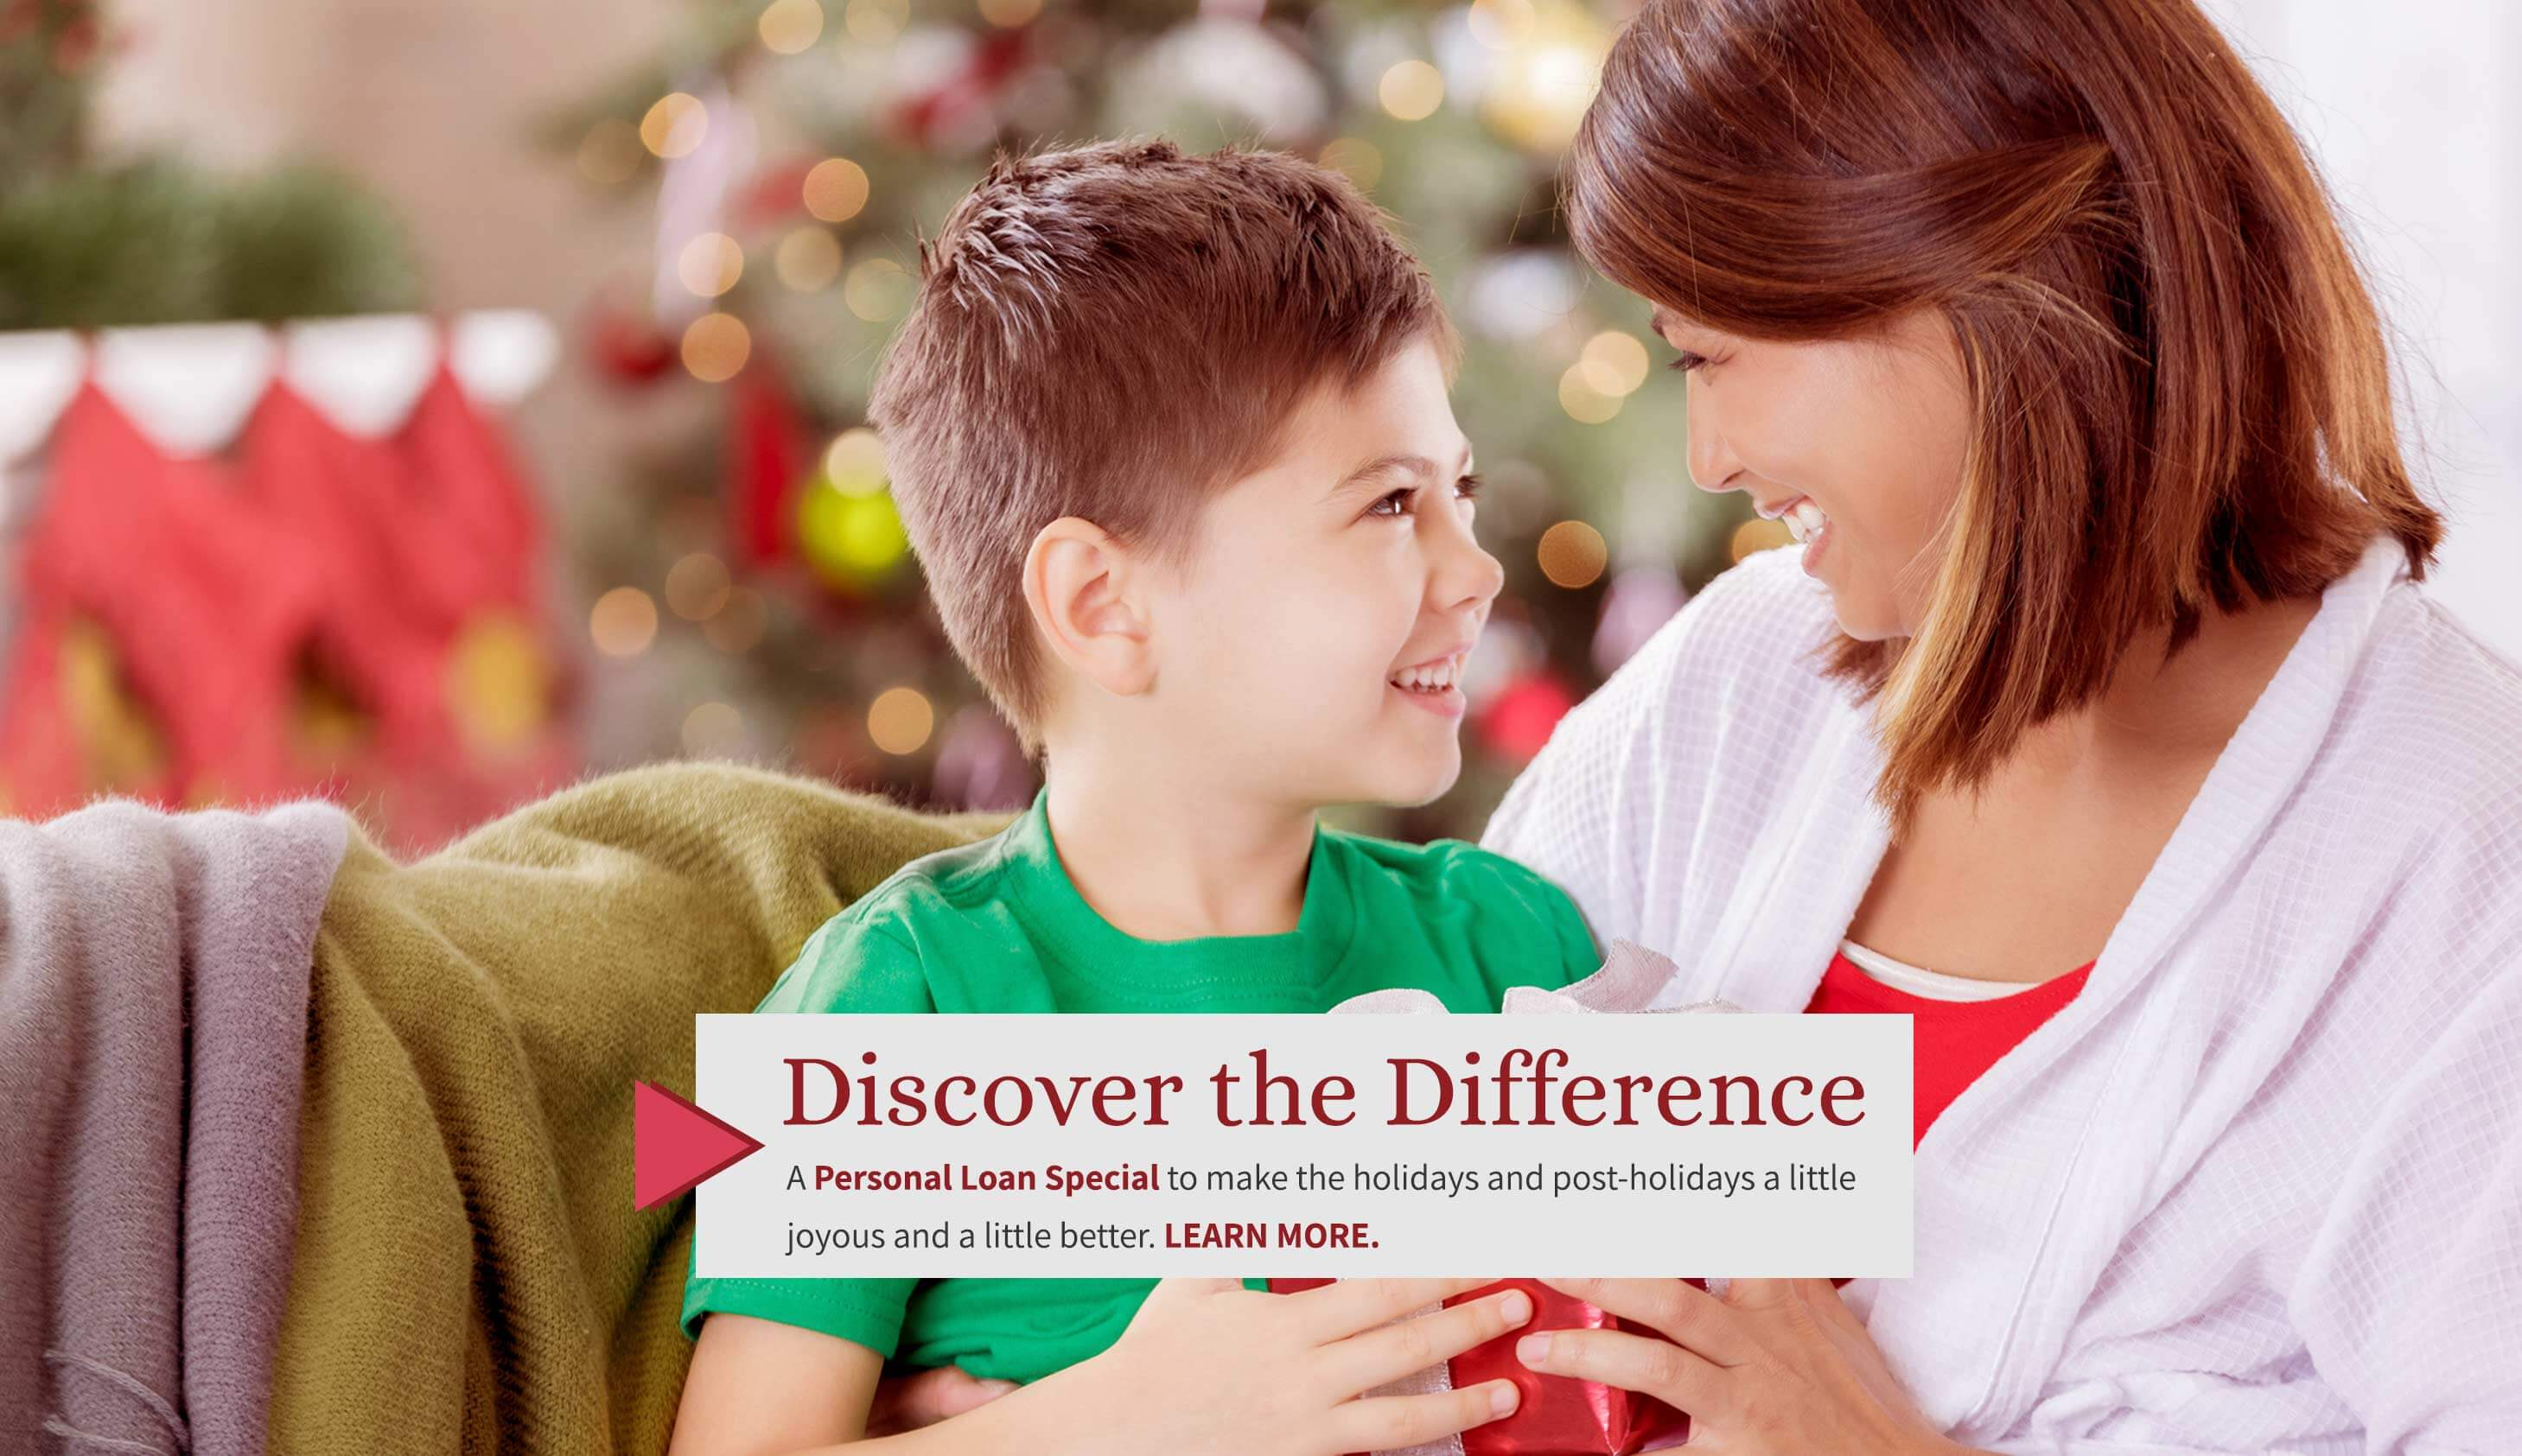 Discover the Difference. A Personal Loan Special to make the holidays and post-holidays a little joyous and a little better.